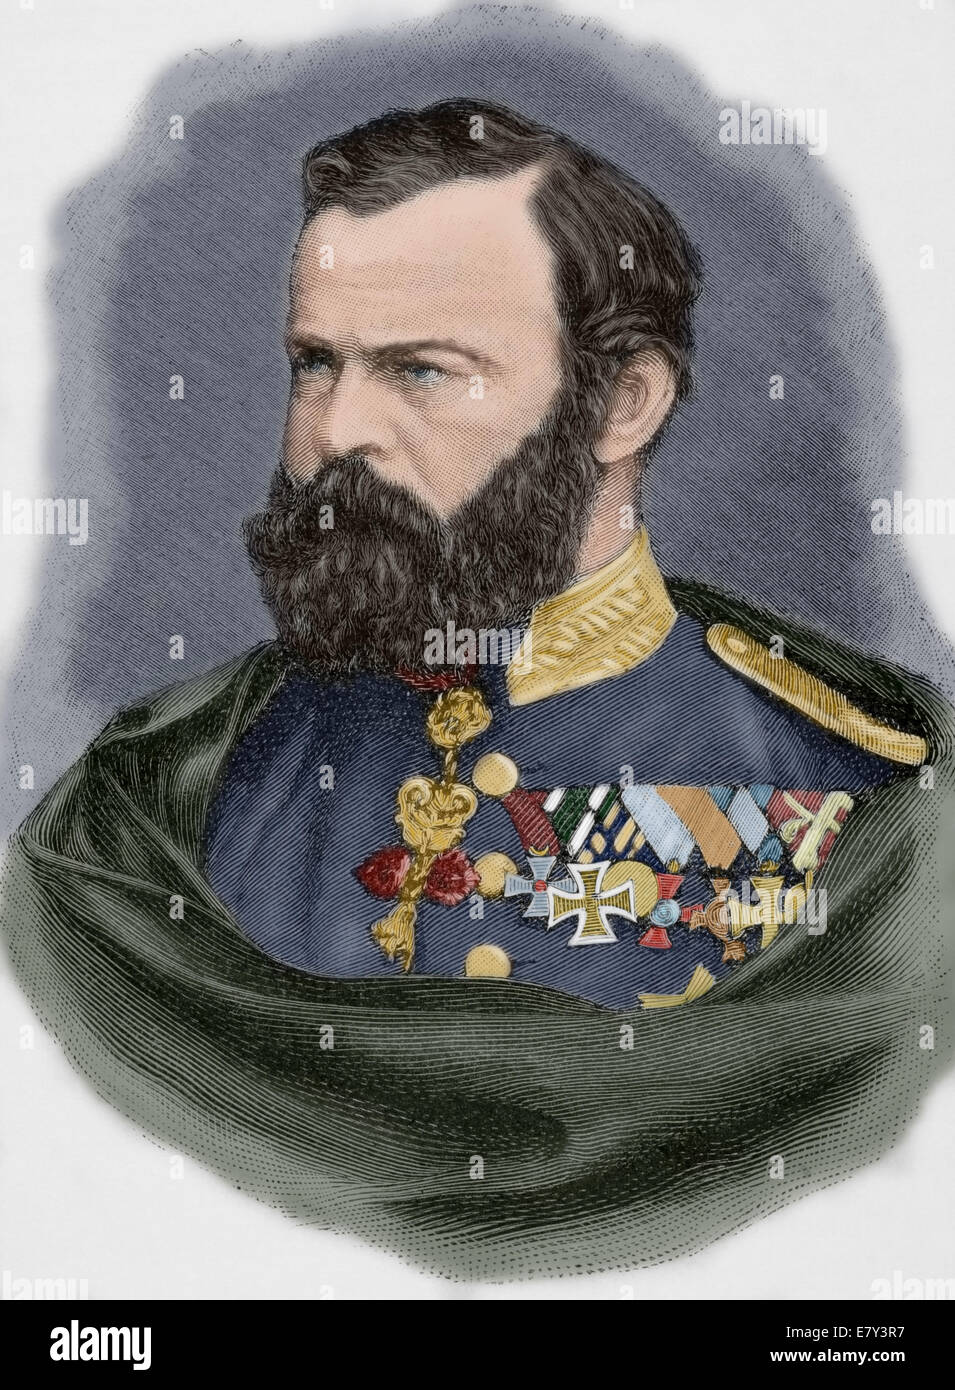 Prince Luitpold of Bavaria (1821-1912). Prince regent and de facto King of Bavaria. Engraving. Universal History, - Stock Image